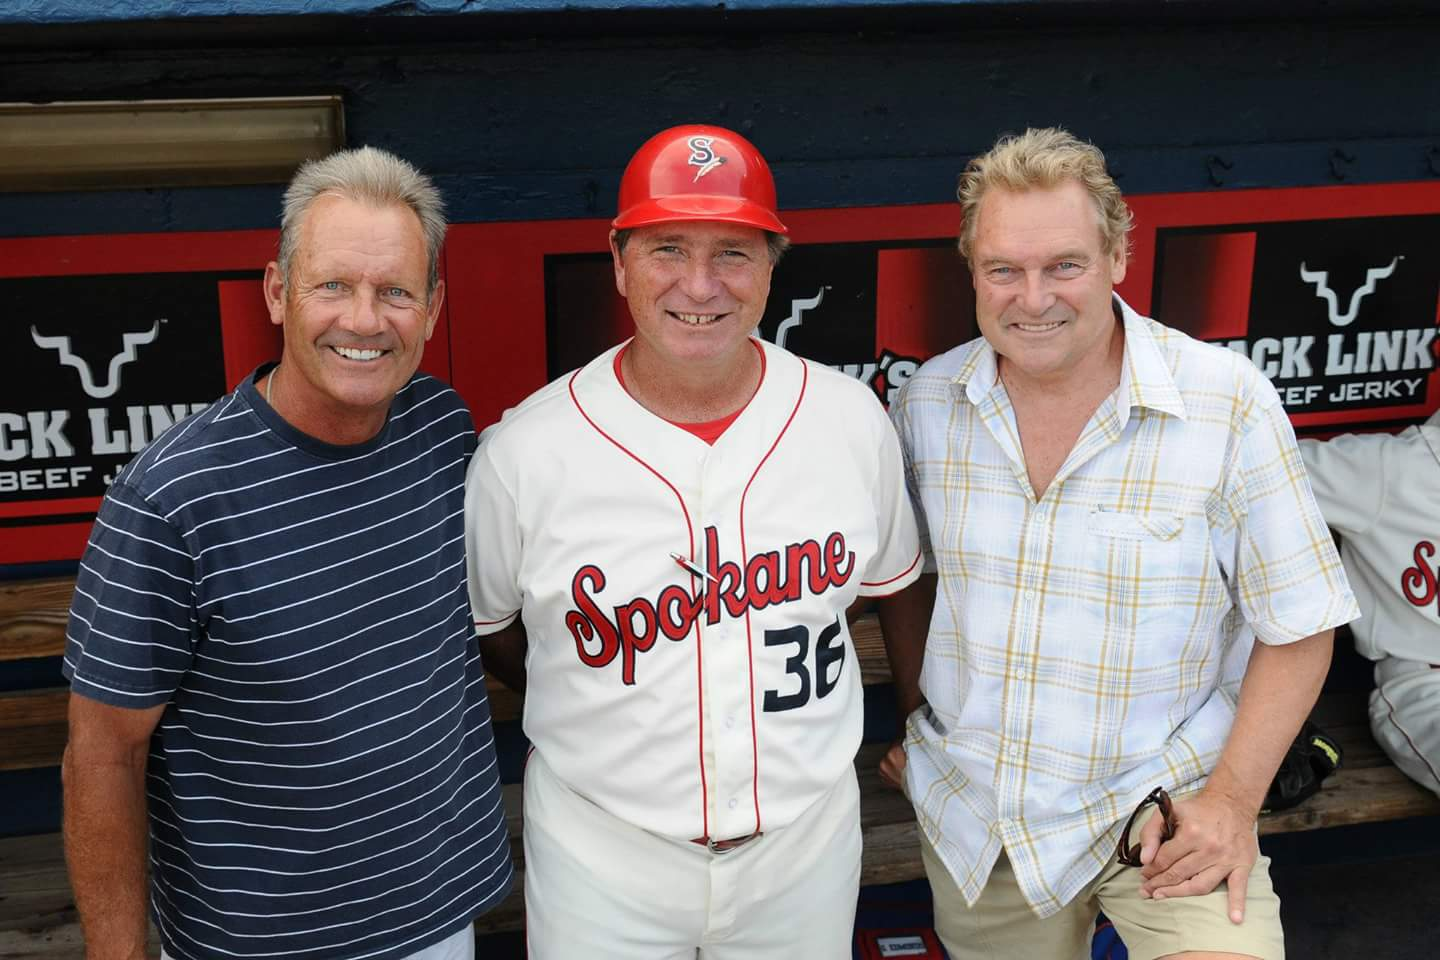 Happy Birthday to George Brett! The legend and baseball HOFer turns 64 years old today.